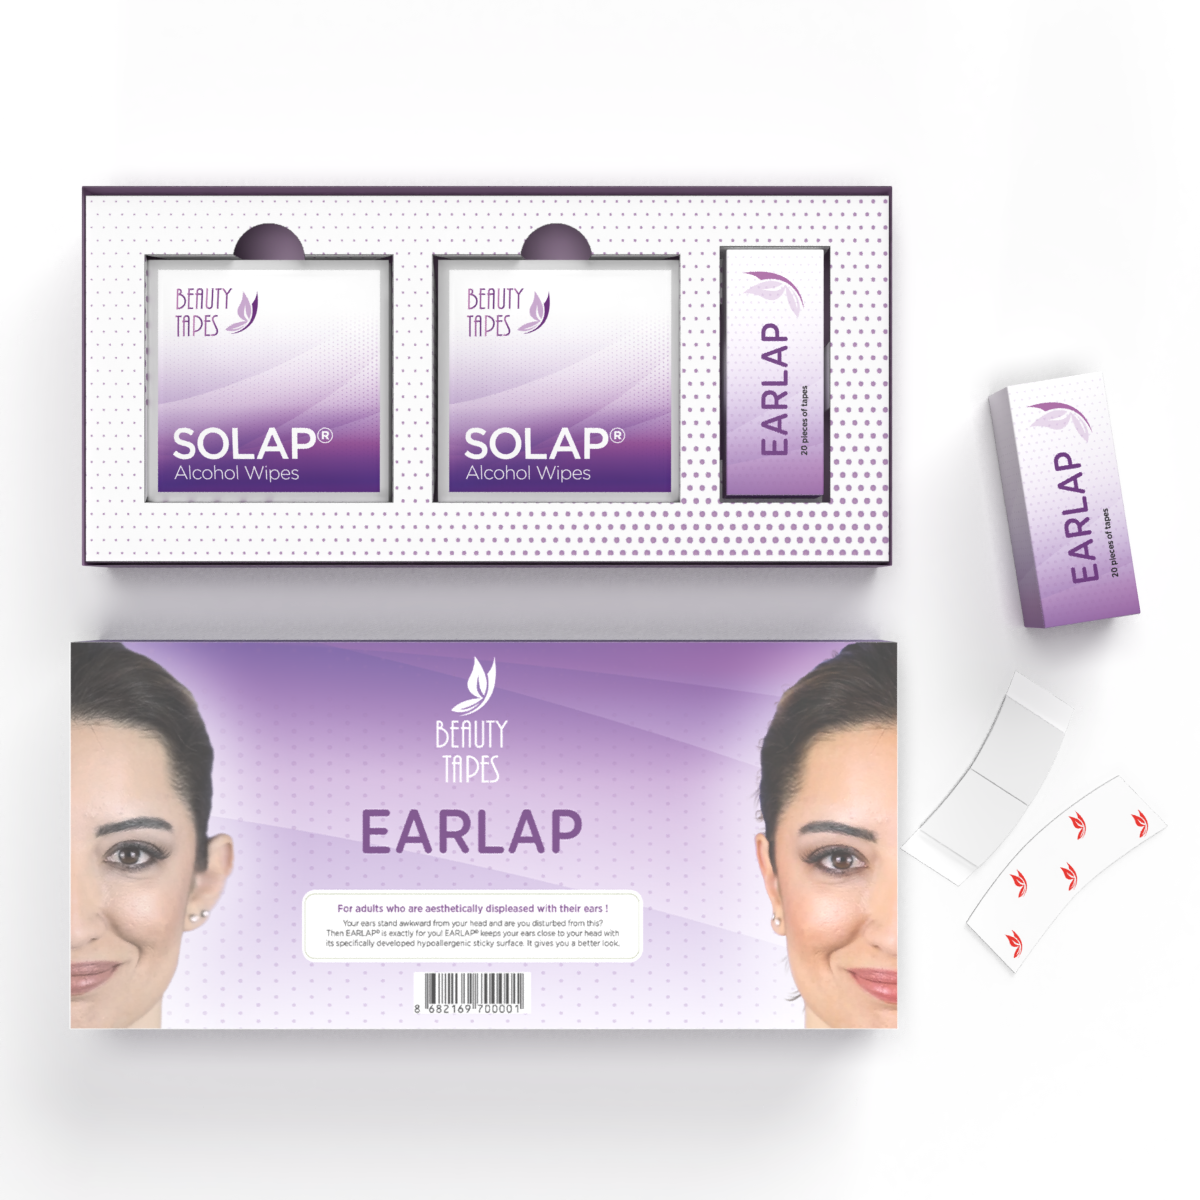 Beauty Tapes EARLAP Ear concealer Corrector Instant effect sticking system for protruding ears, ear